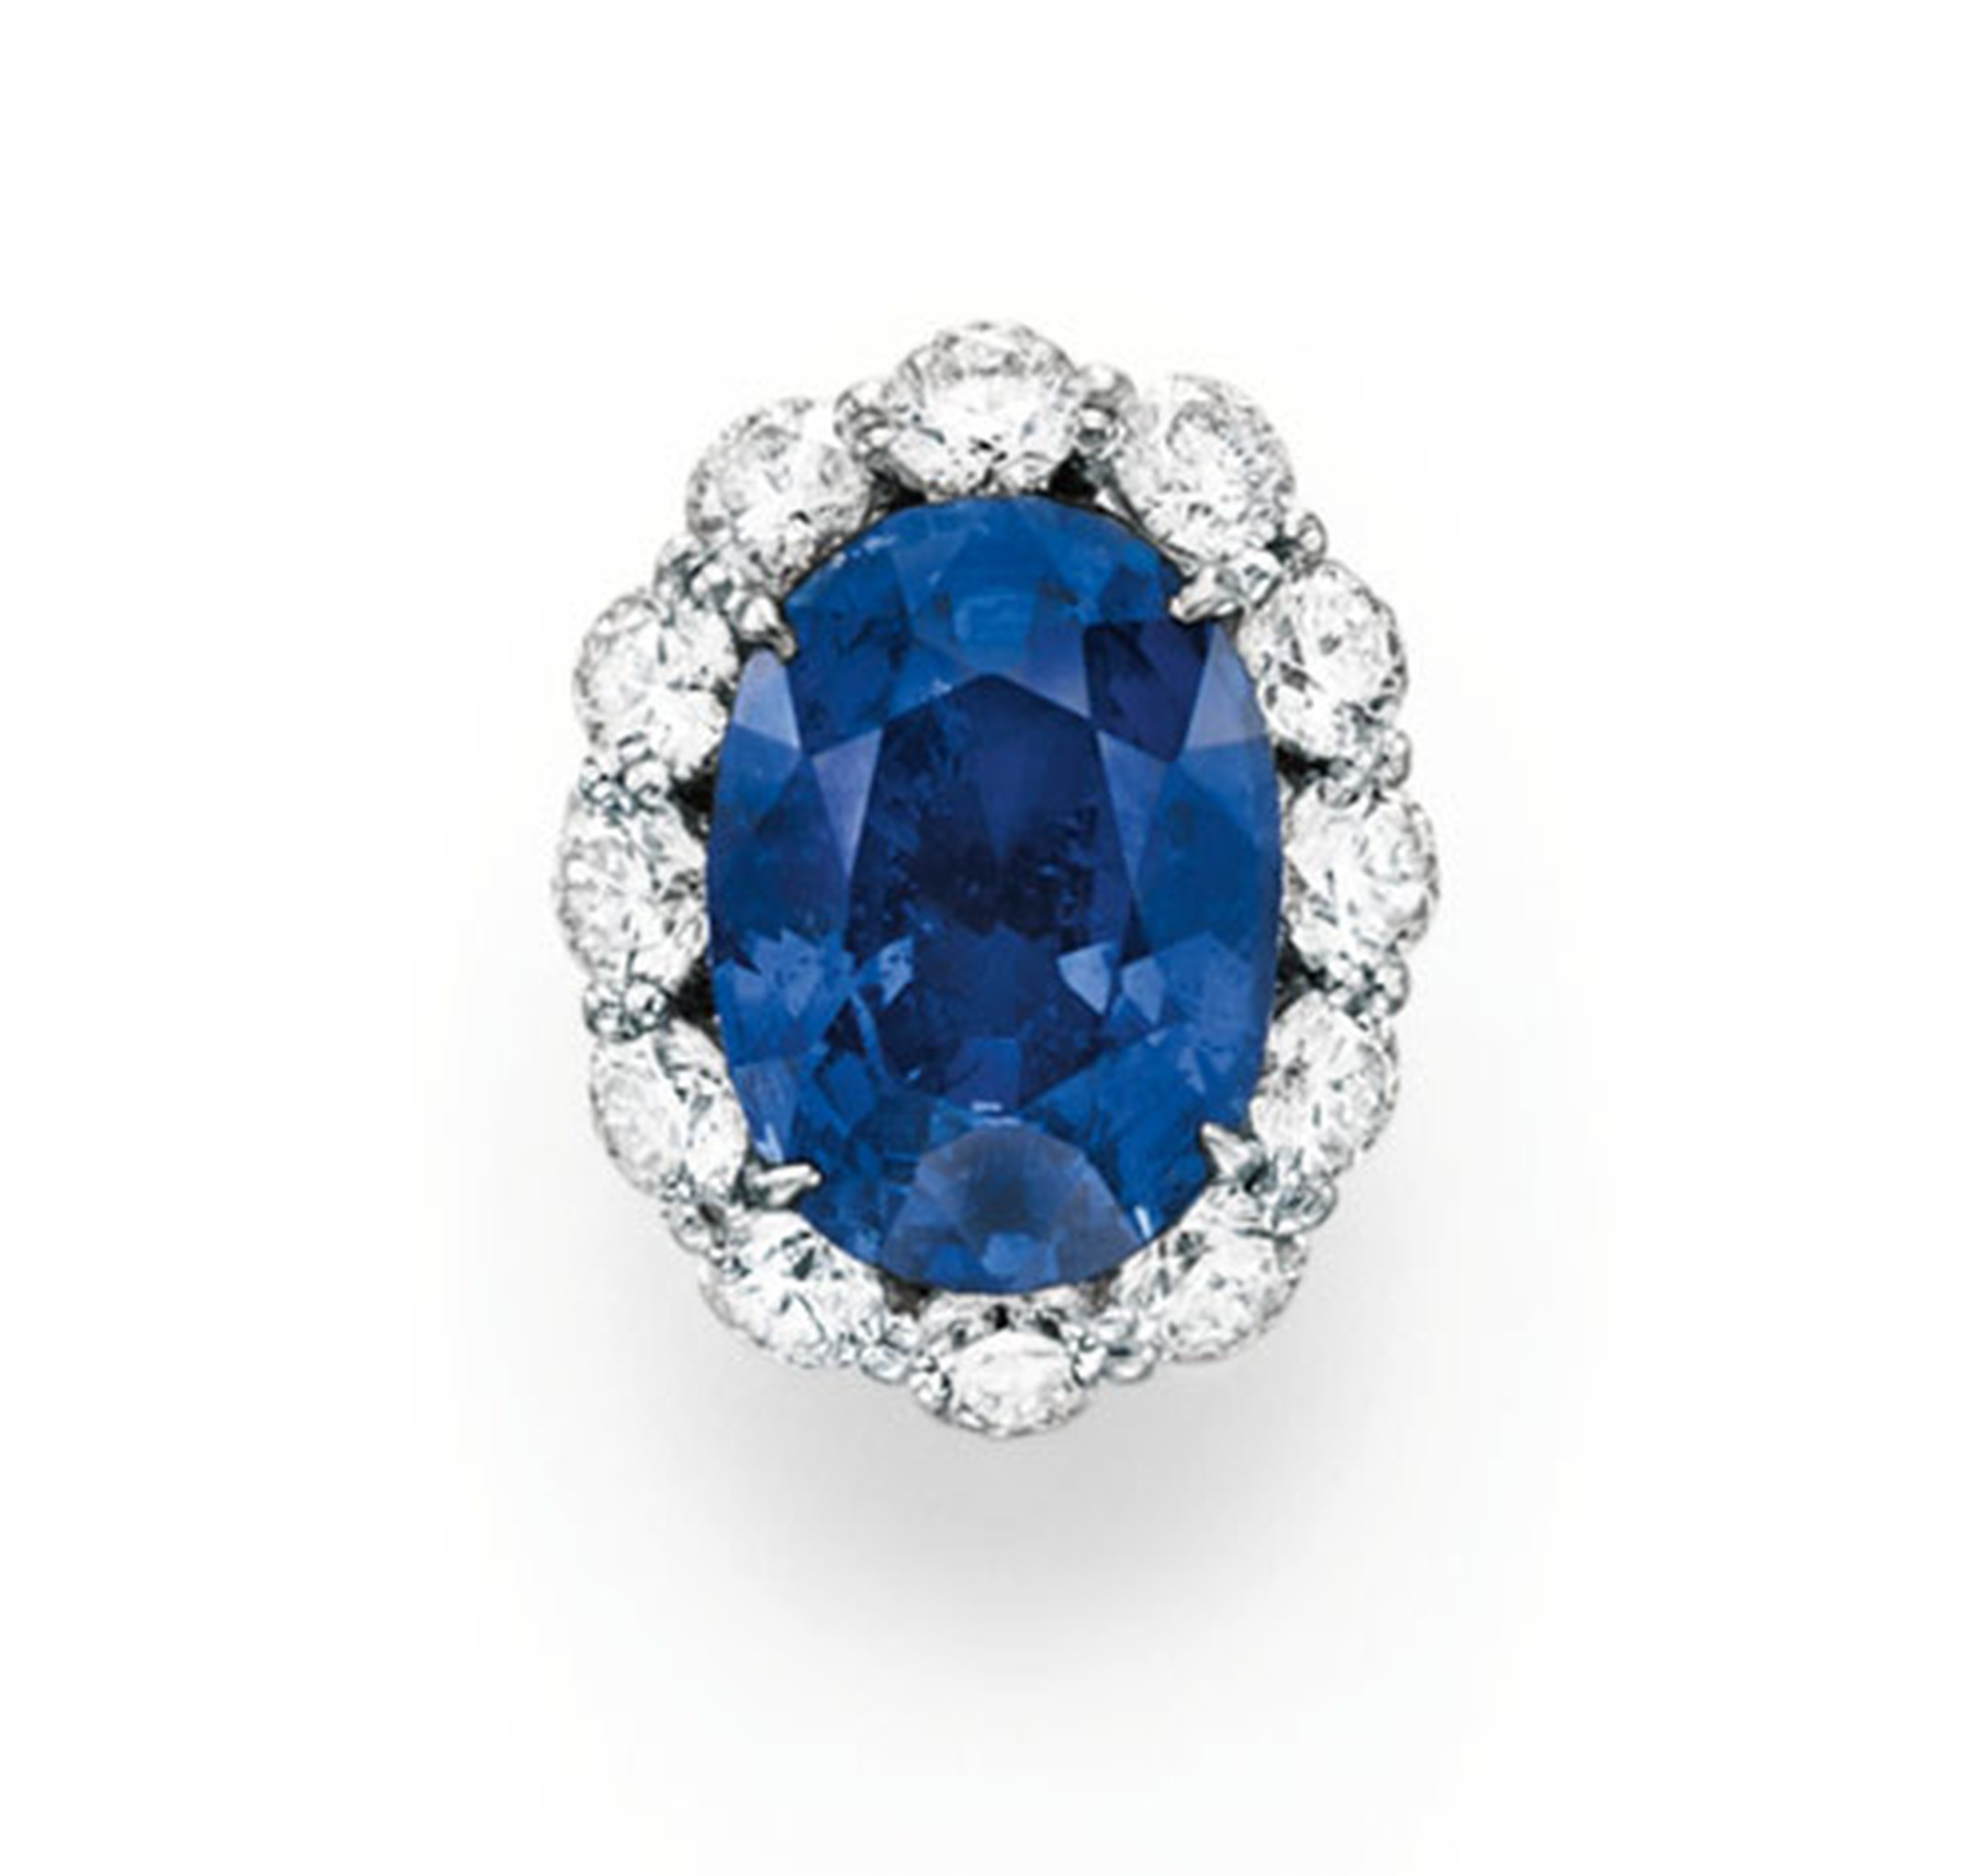 Christies-Oval-Cut-Burmese-Sapphire-Diamond-Ring.jpg